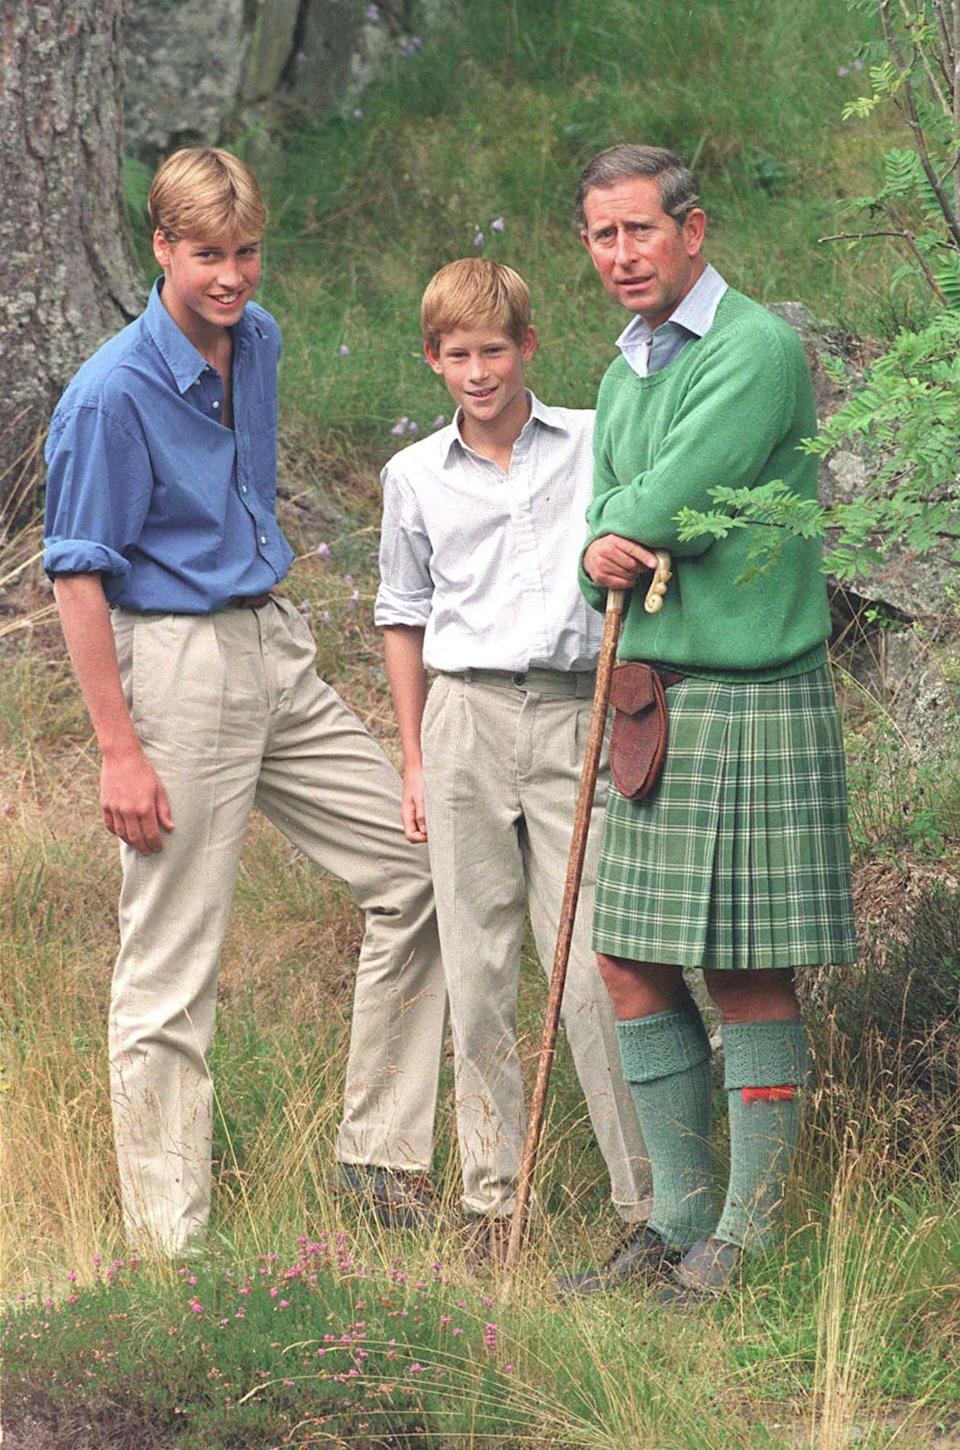 369056 19: FILE PHOTO: (AMERICAS ONLY) Prince William, left, poses for photographers August 16, 1997 along with Prince Harry and Prince Charles at Balmoral, Scotland. The prince celebrates his eighteenth birthday June 21, 2000. (Photo by Julian Parker/UK Press)